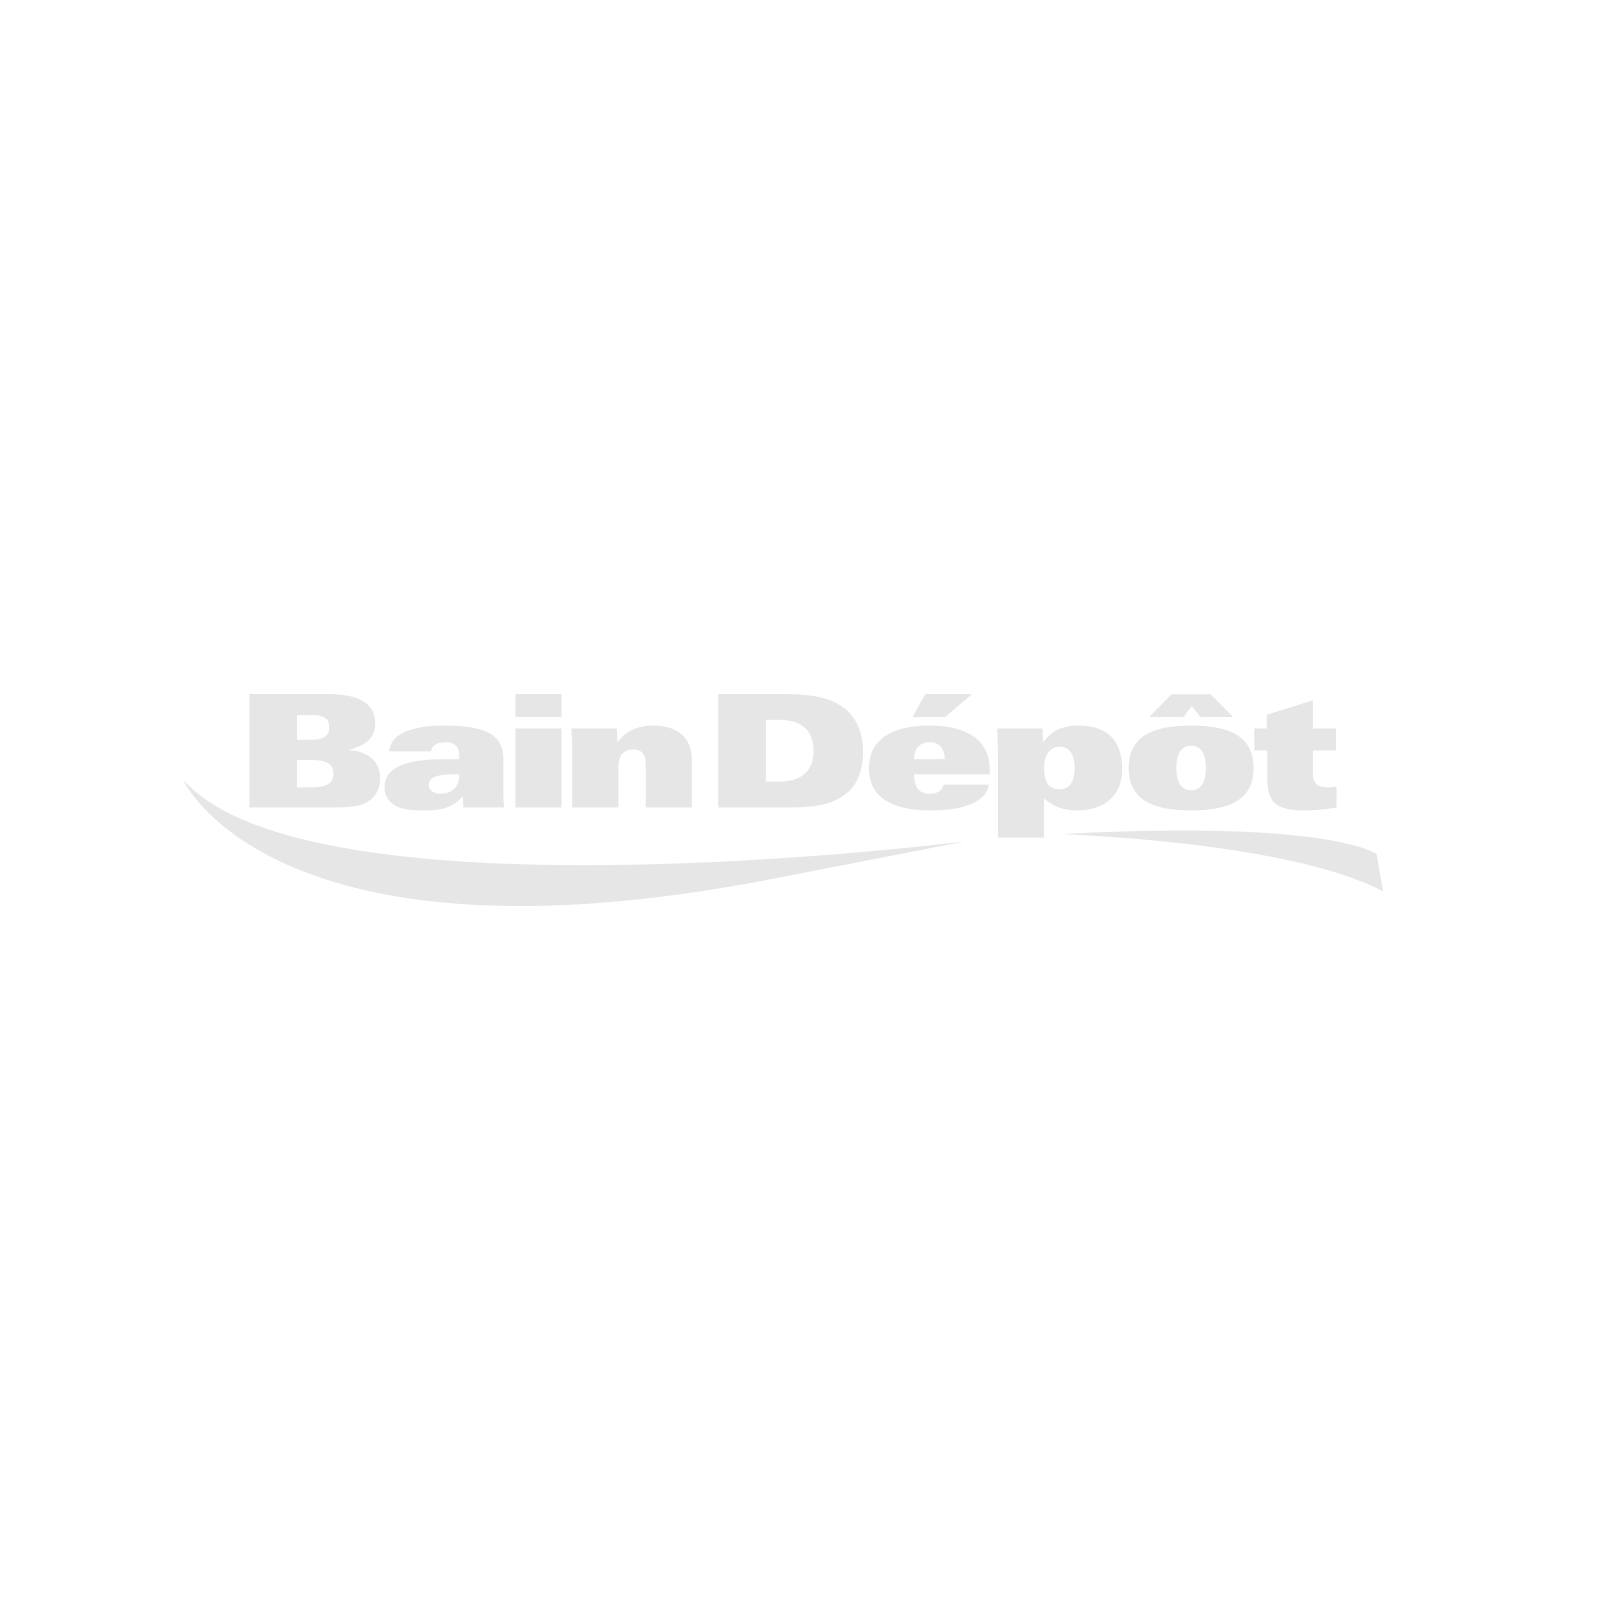 "30"" x 36"" x 13"" Two-door wall kitchen cabinet"